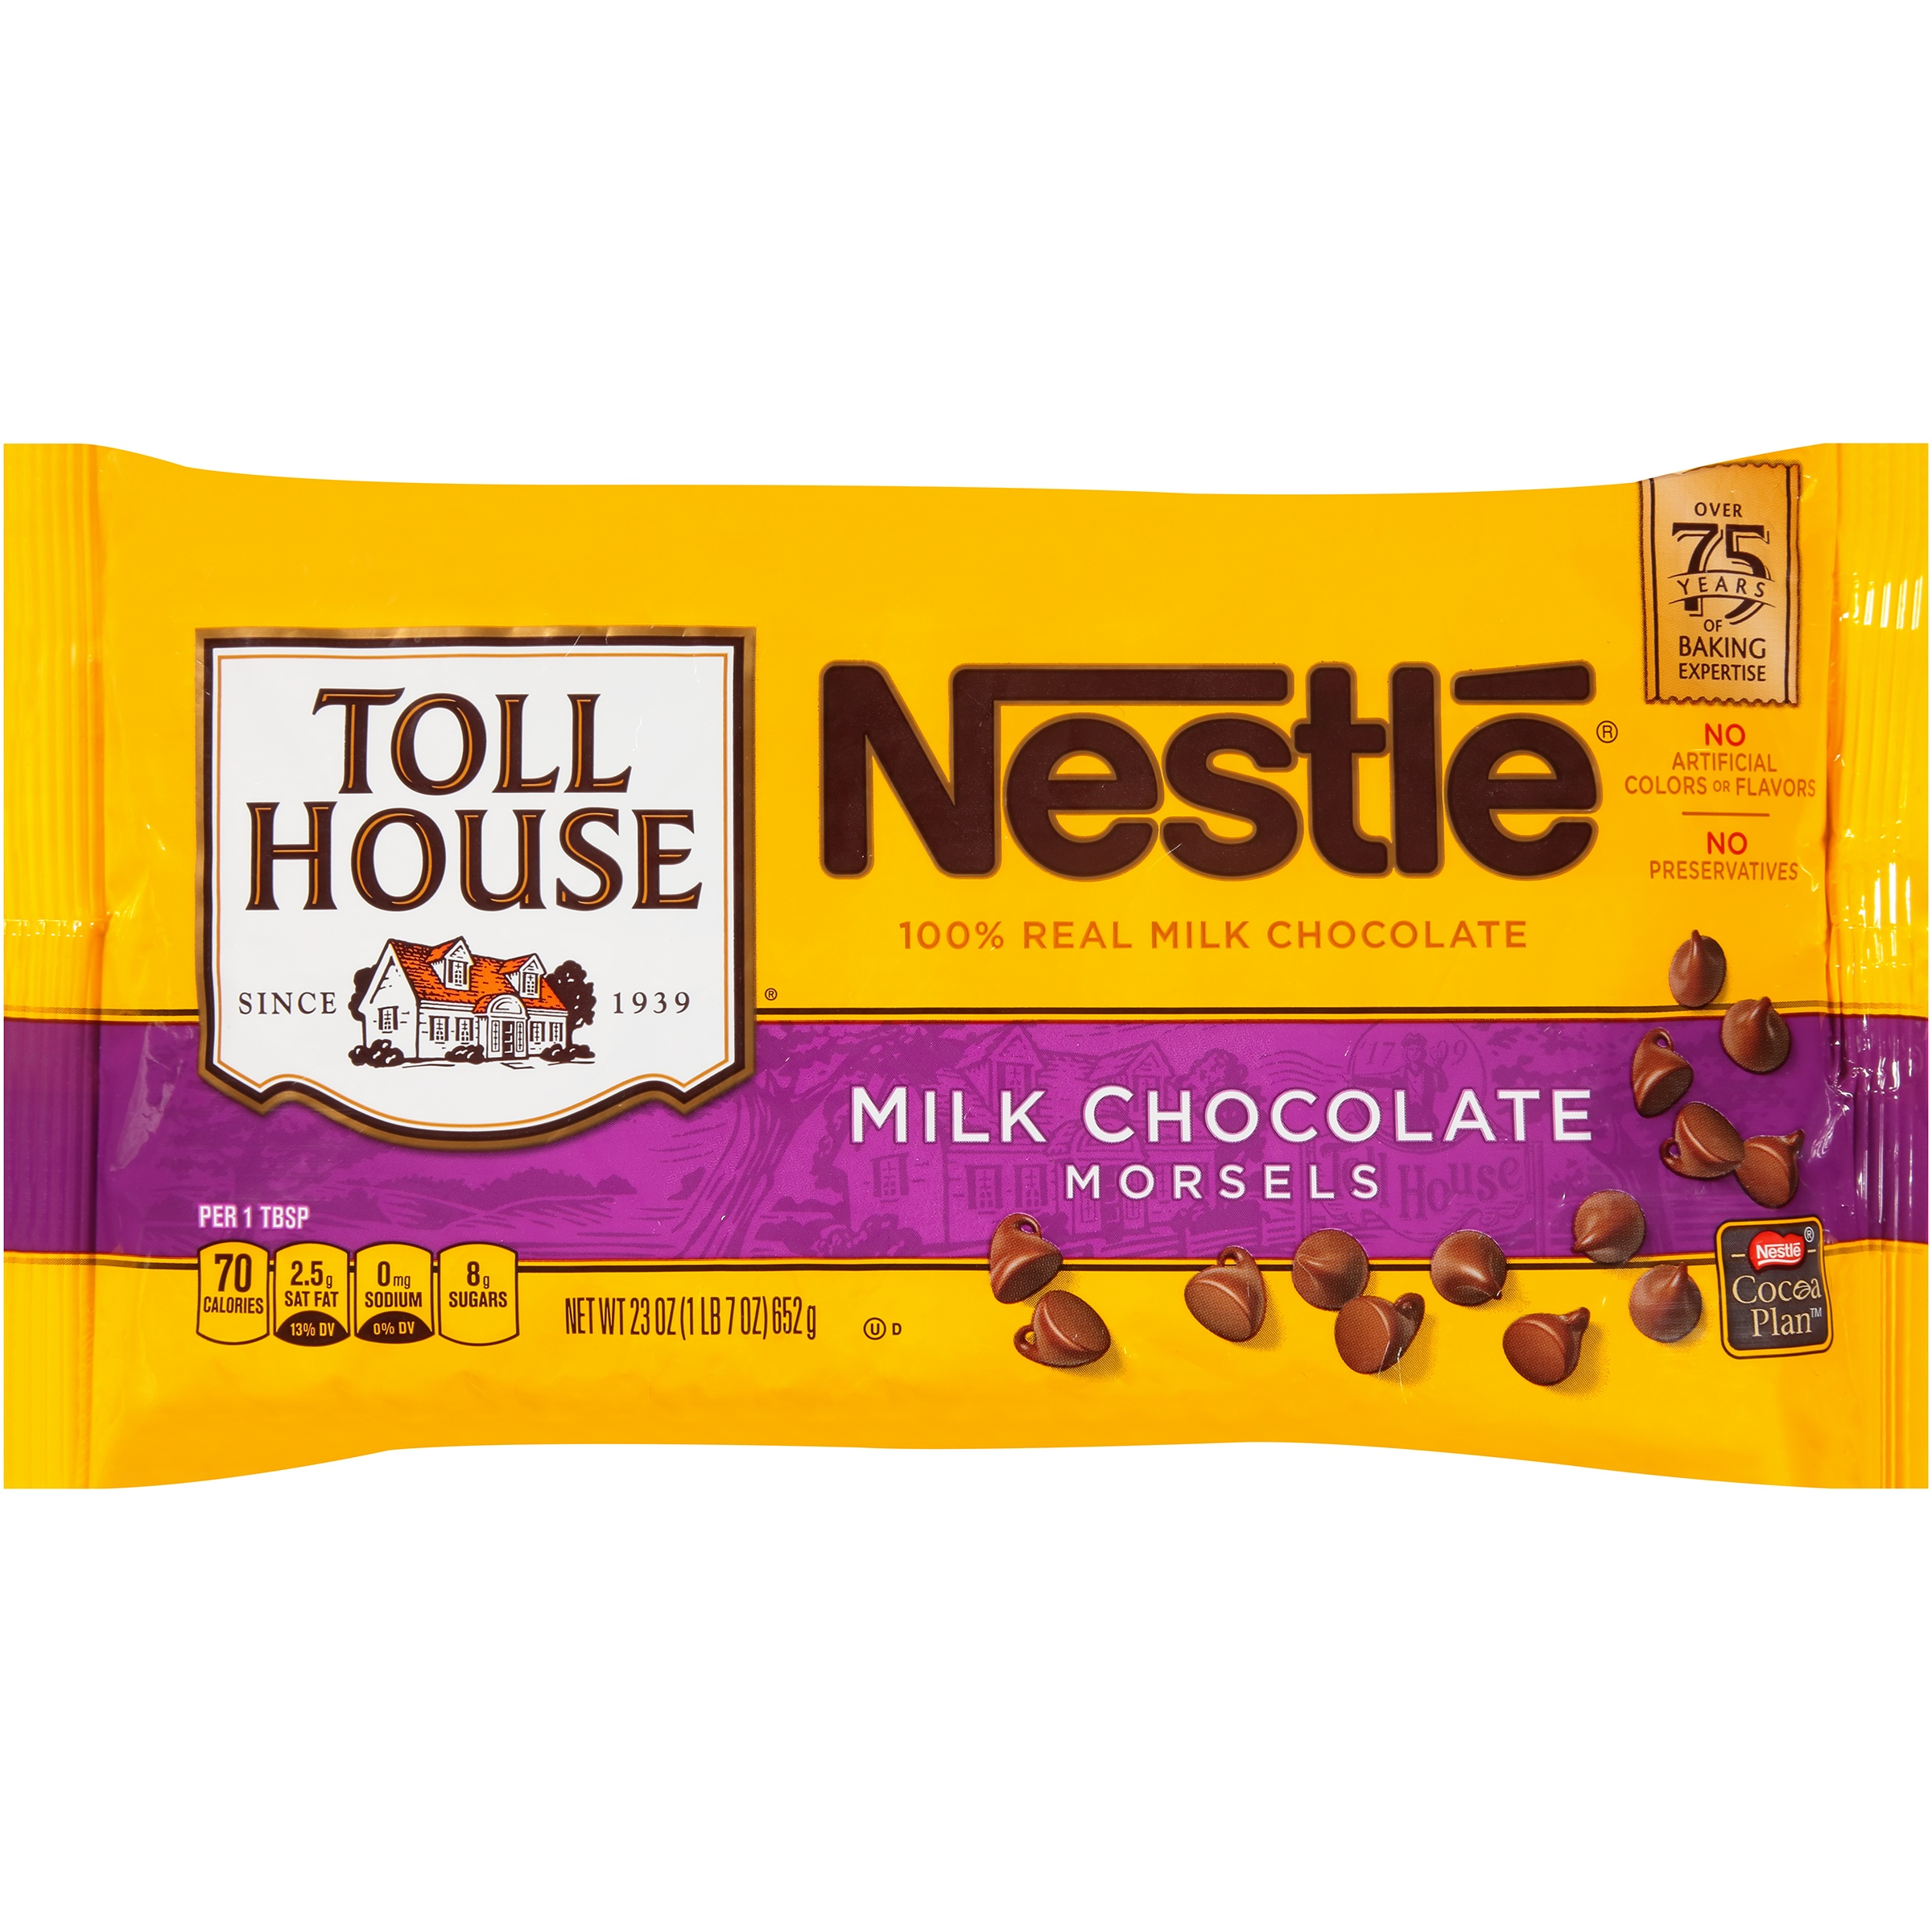 Nestlé TOLL HOUSE Milk Chocolate Morsels 23 oz. Bag